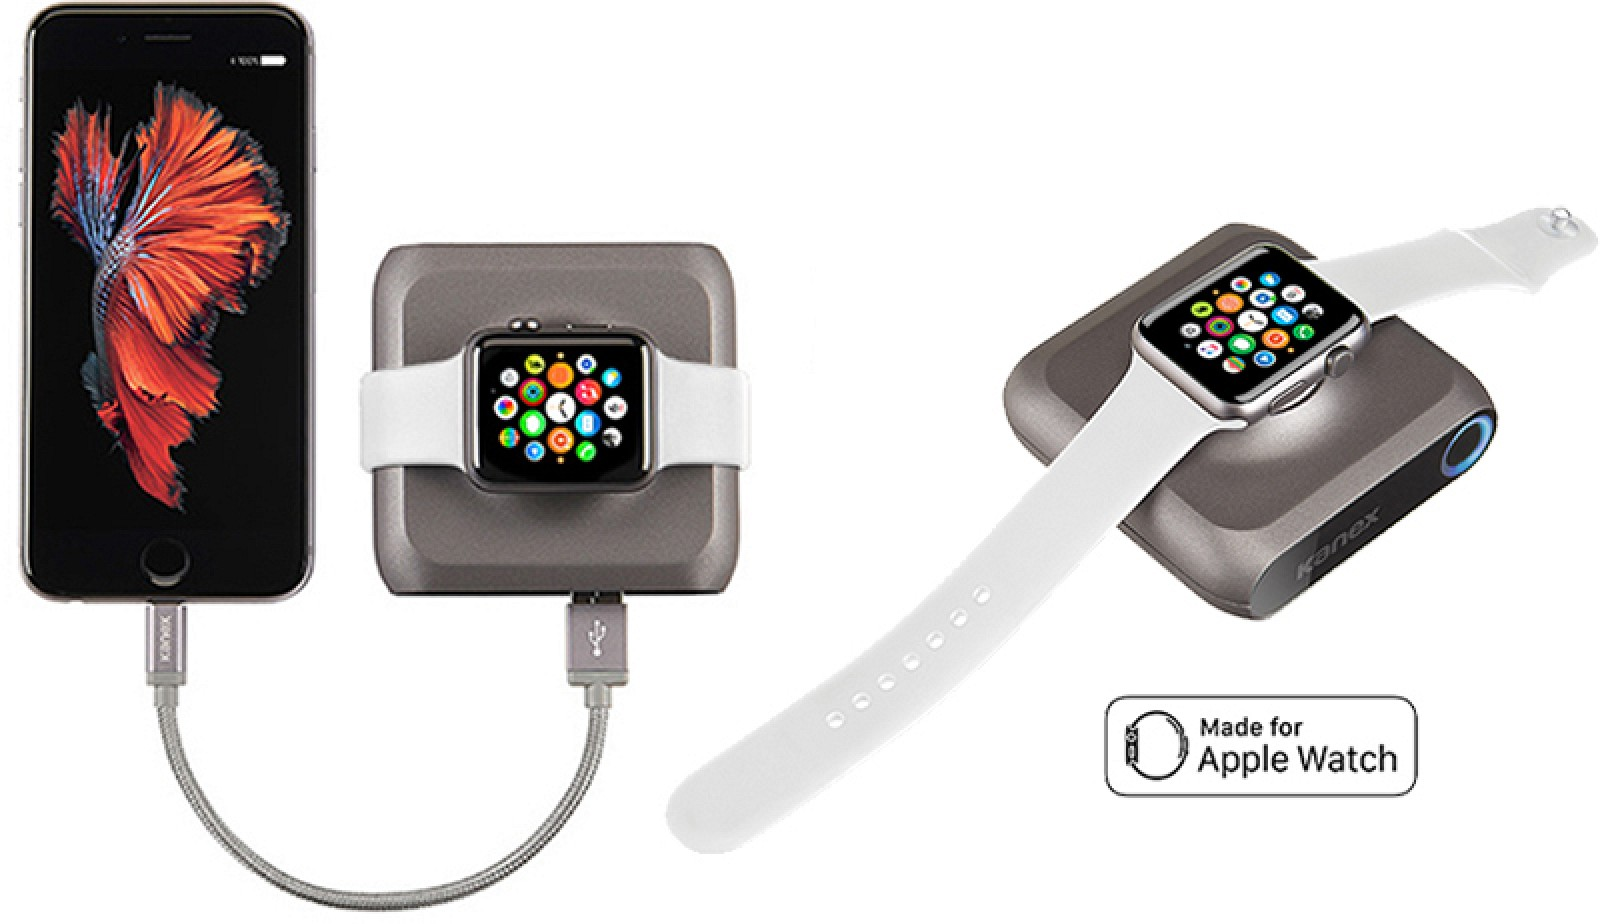 Kanex's 'GoPower Watch' Portable Battery for Apple Watch ...